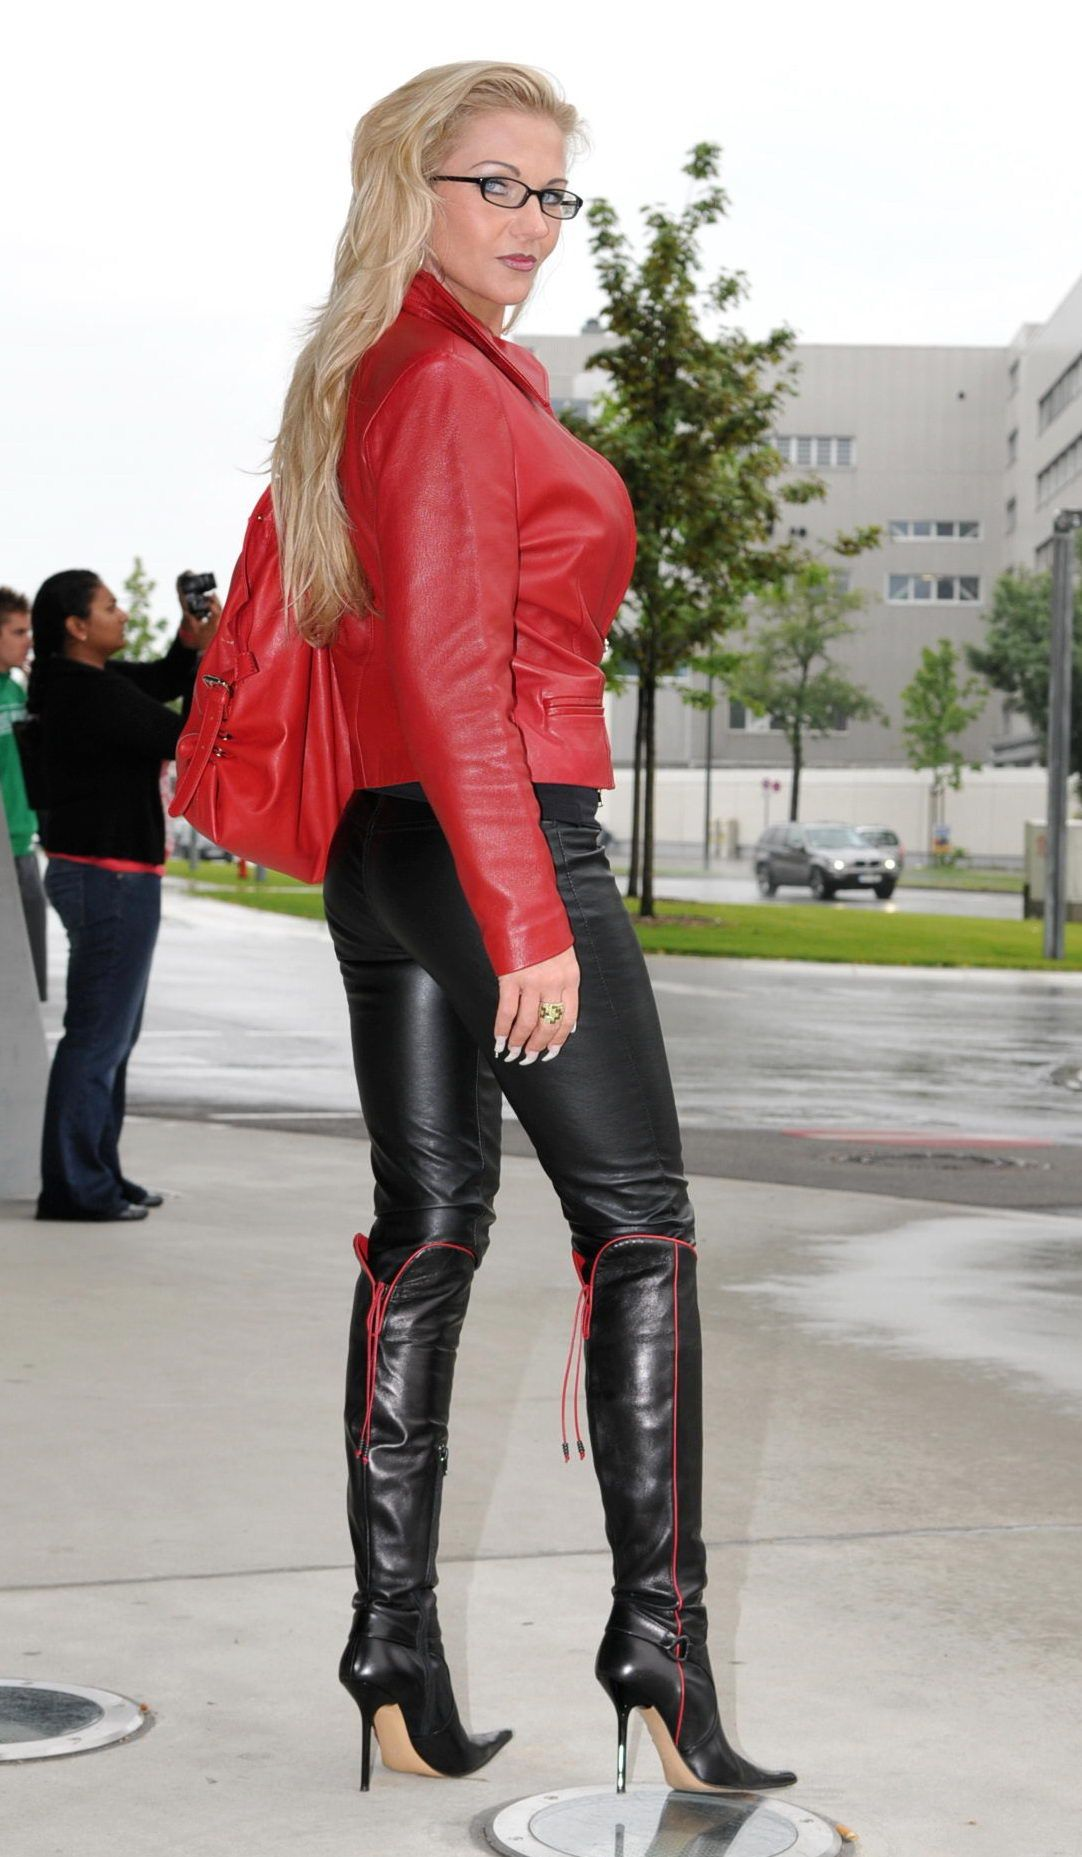 Boot fetish forms photos 596